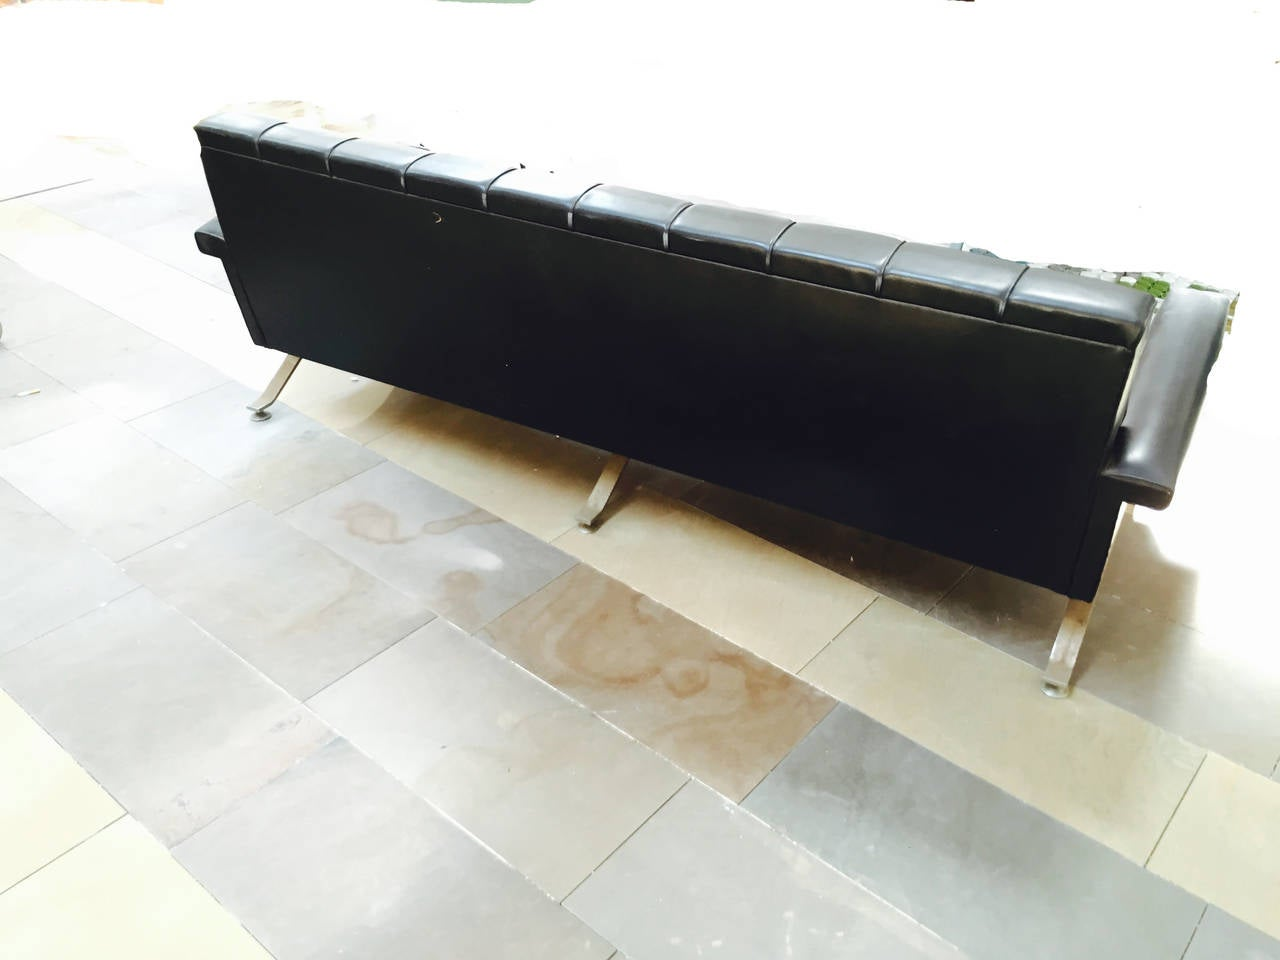 Rare sofa of 1960s by Ico Parisi for Cassina model 878. Structure in chromed metal and imitation leather original, to be restored, completely original in its parts.